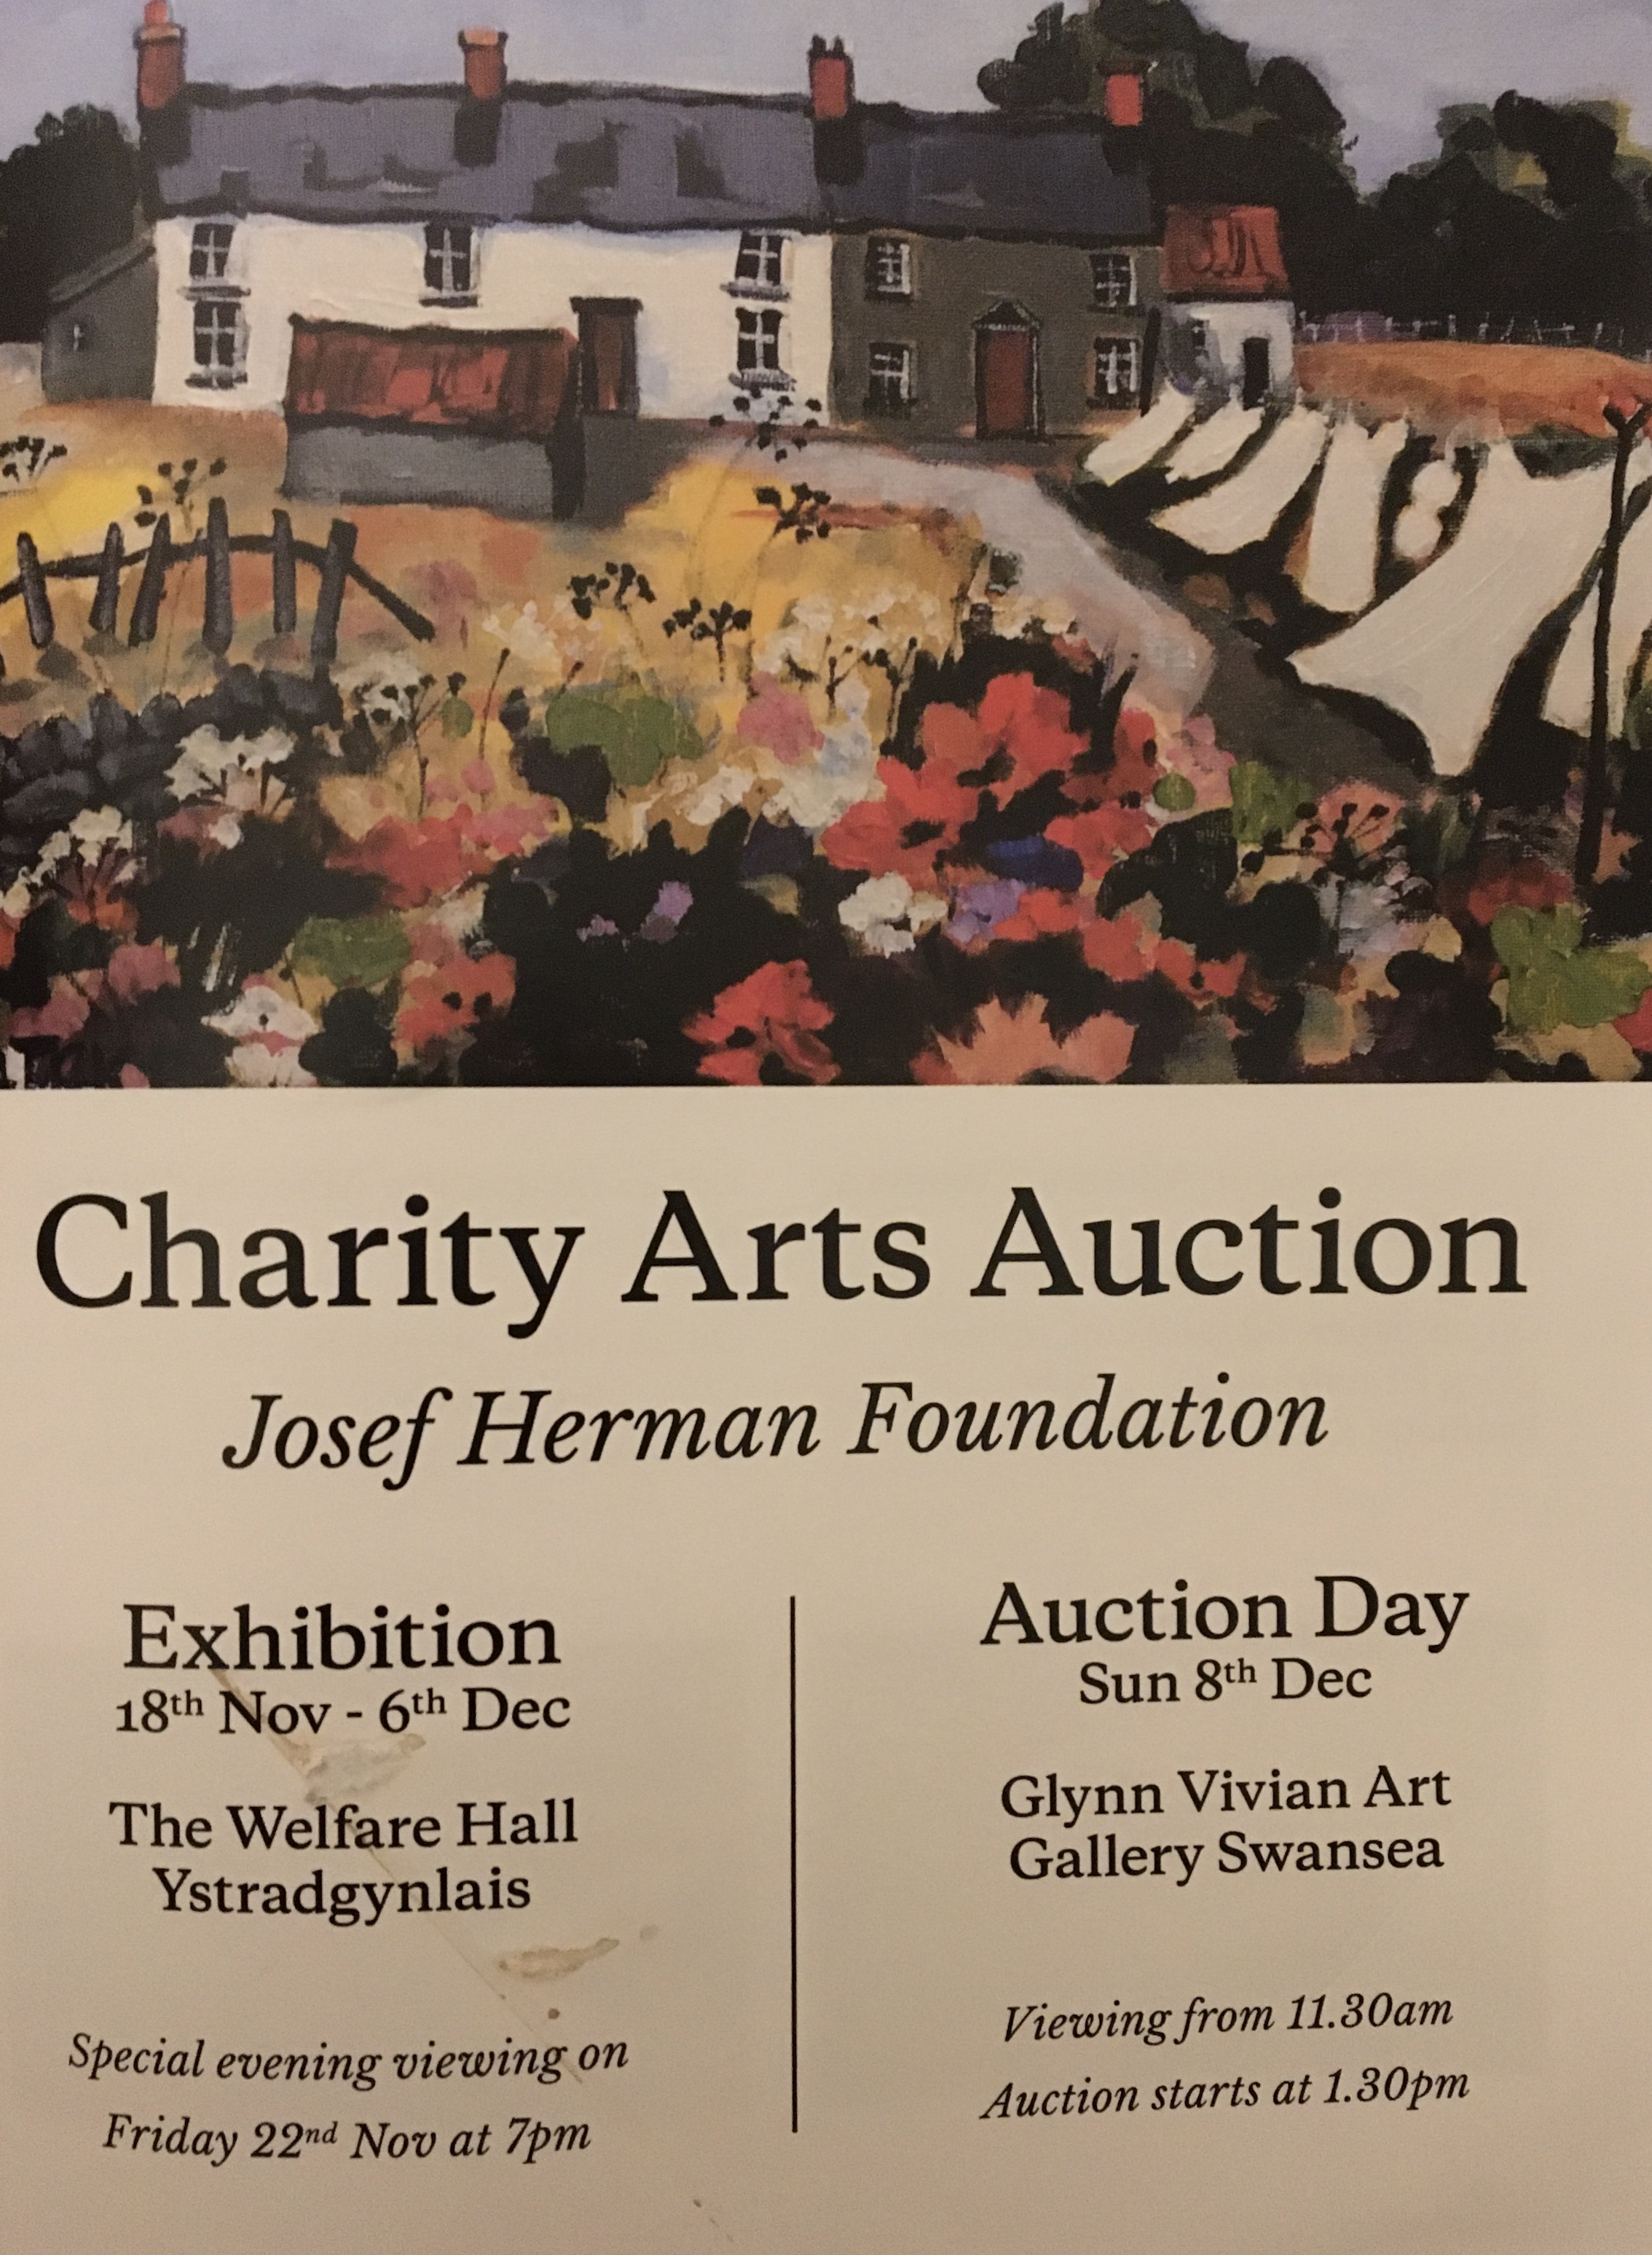 Charity Arts Auction